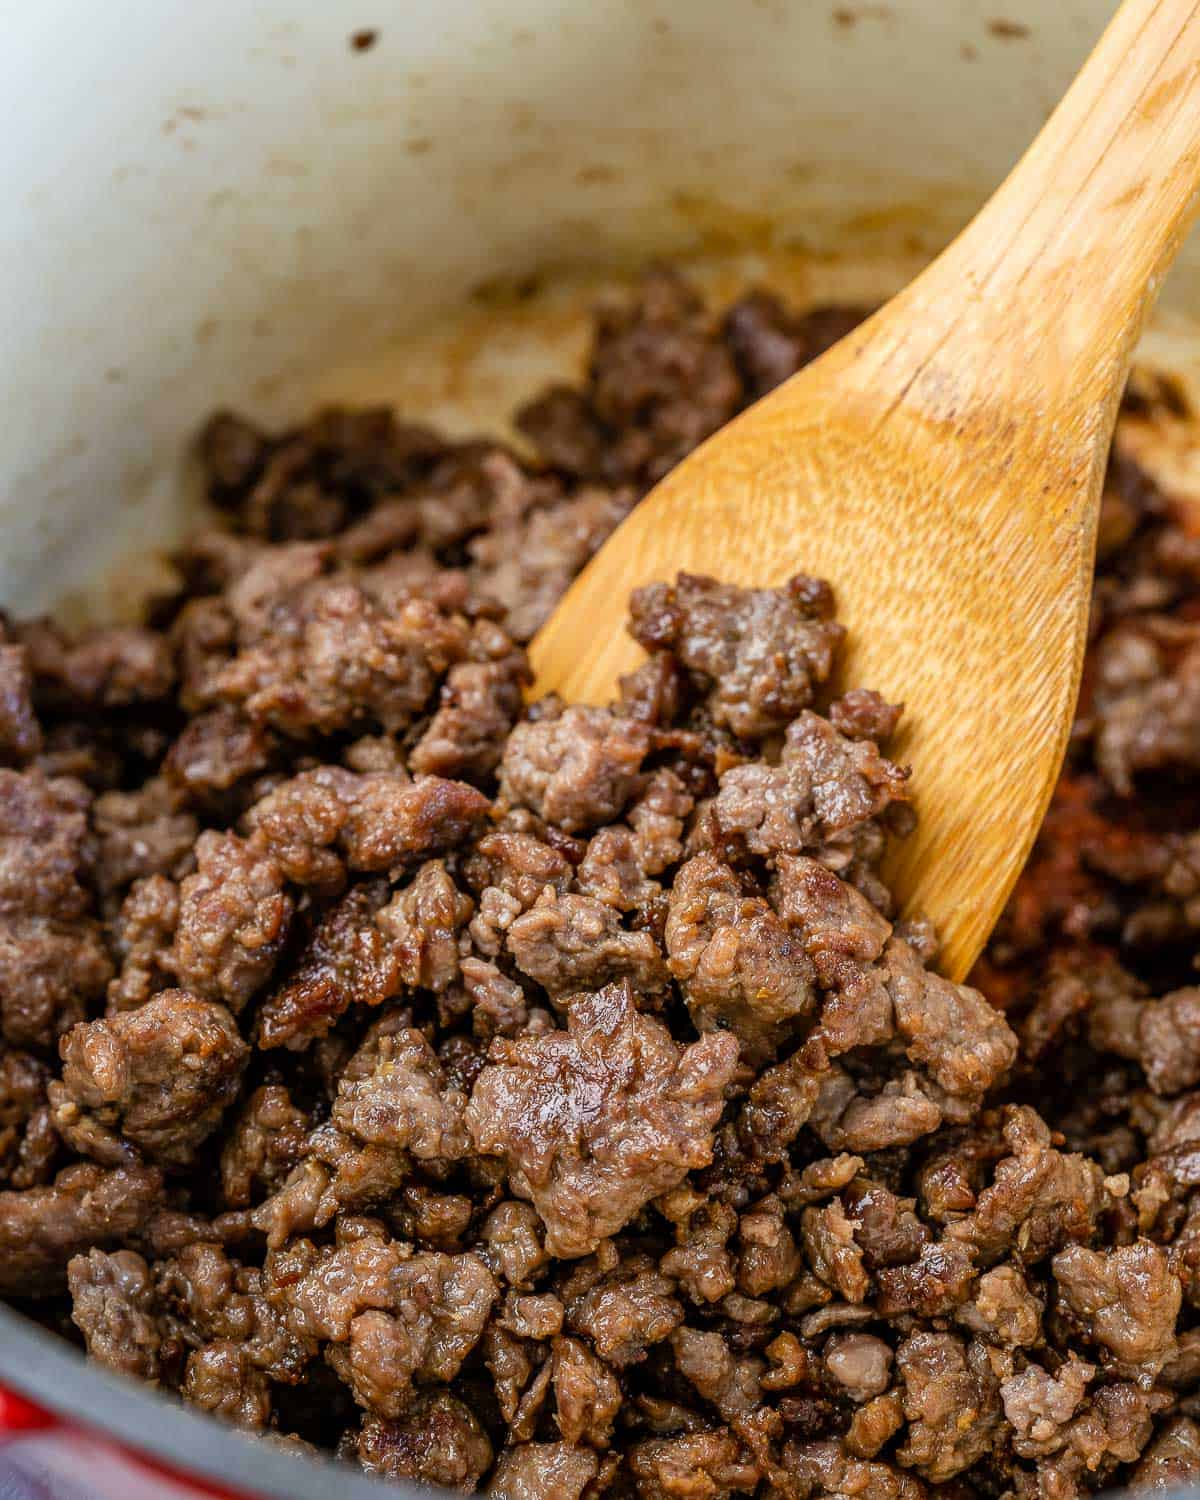 Ground beef browned in pot with wooden spoon.